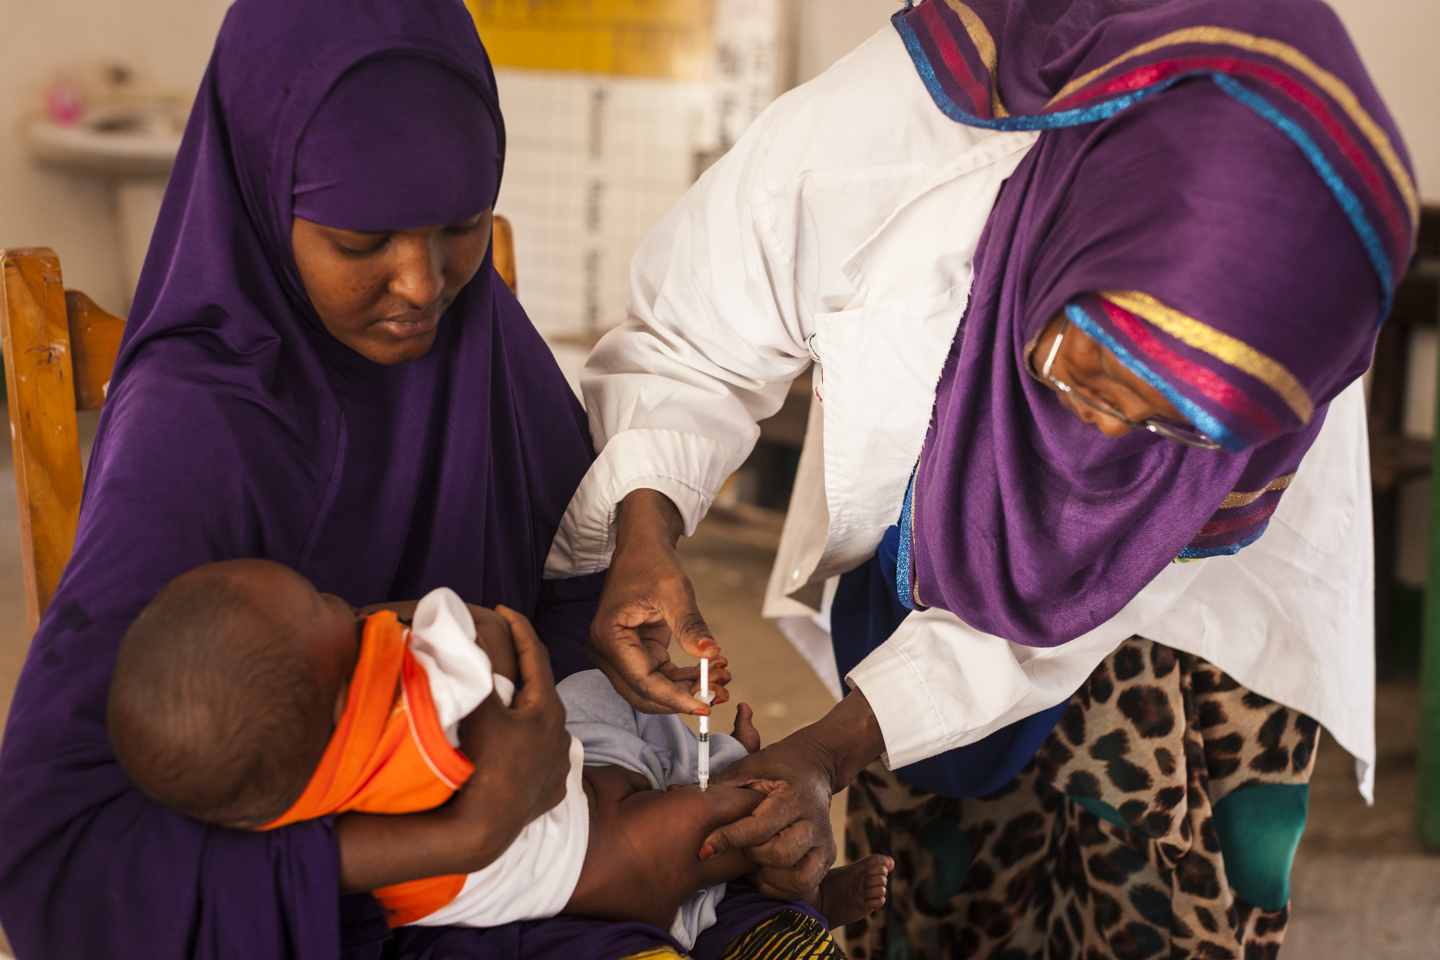 EPI Officer Saynab Saleeban immunizes Mahad, 3 months, at the Central Burao Maternal and Child Health Center in Somaliland, November 12, 2014.